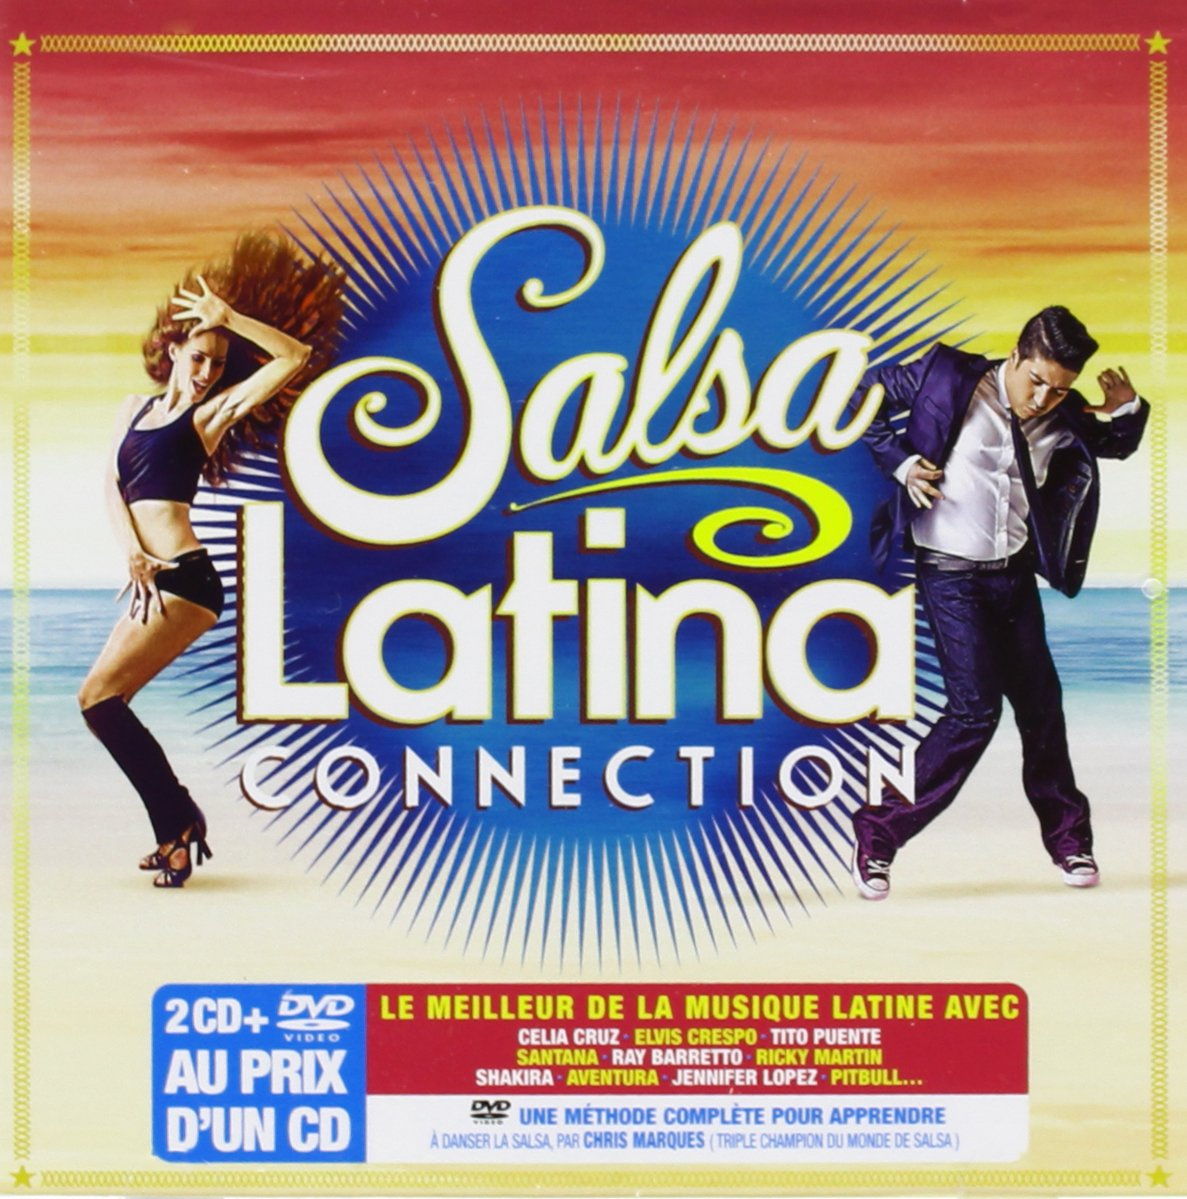 Salsa Latina Connection                                                                                                                                                                                                                                                    <span class=